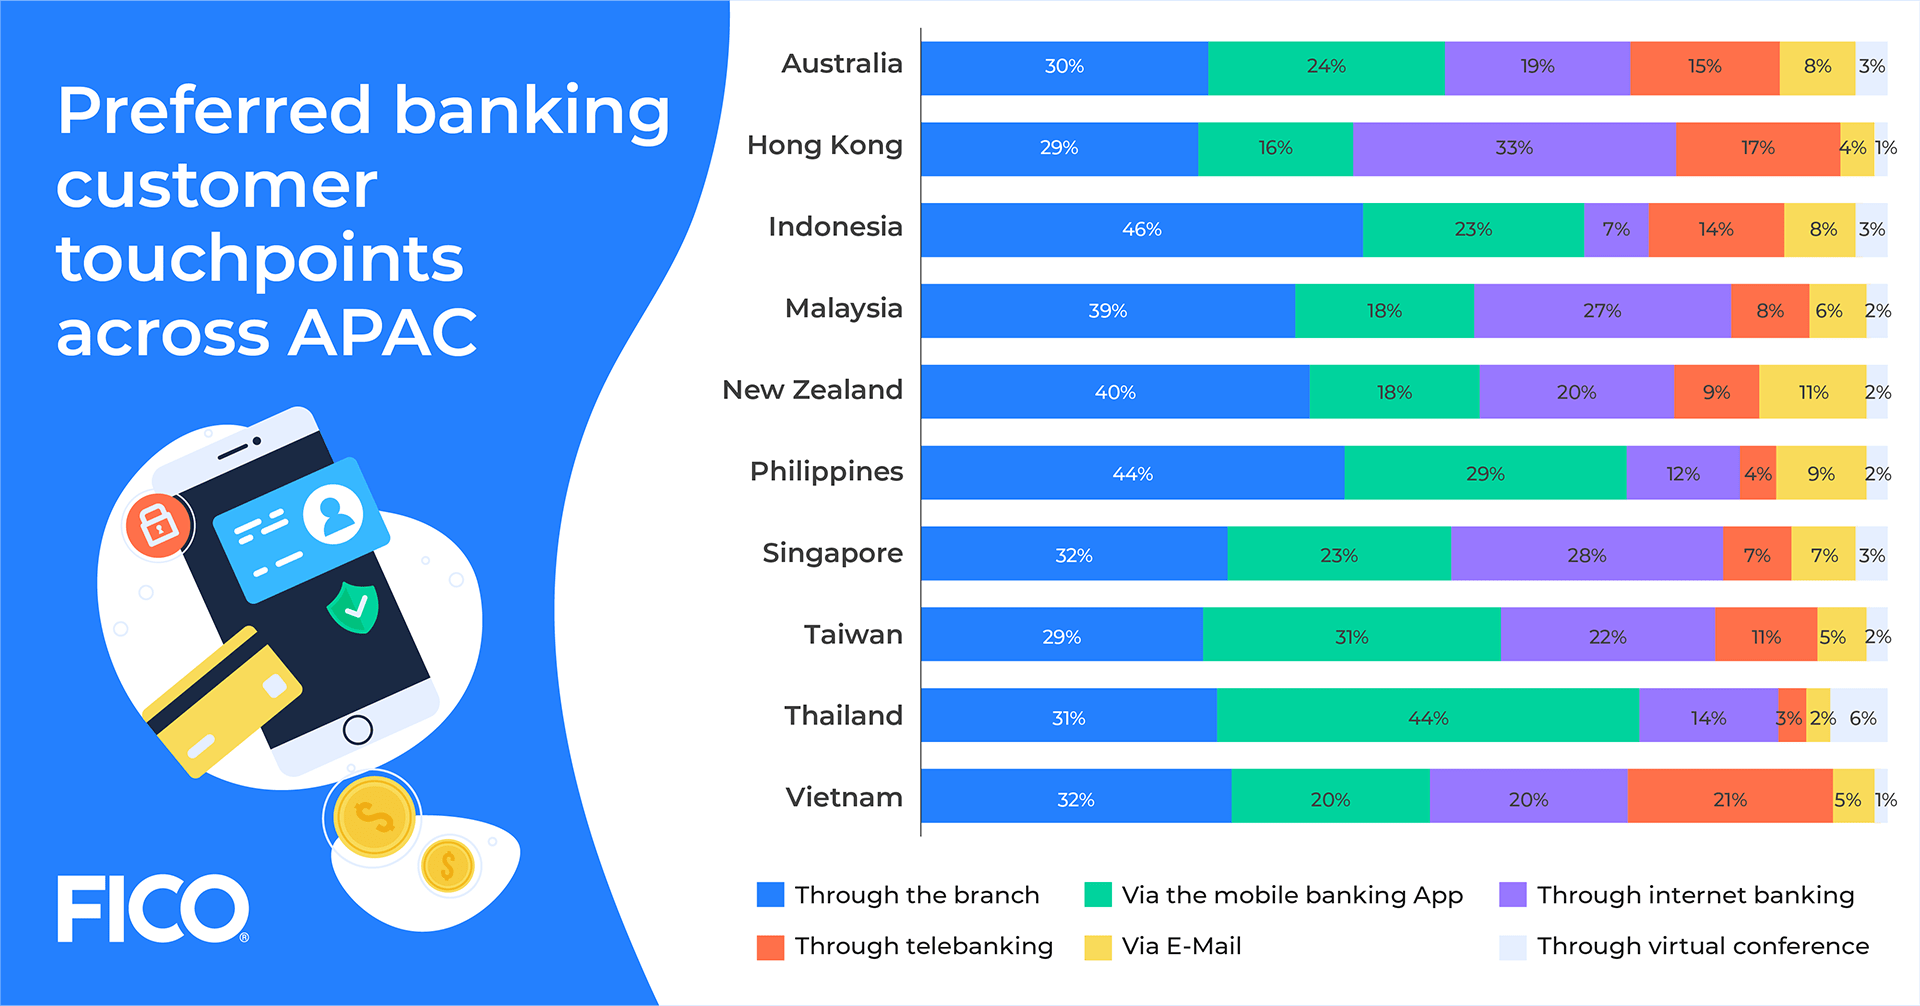 Preference on engaging with main bank during financial hardship, Source: Asia Pacific Digital Banking Consumer Study, Asian Banker Research, 2021